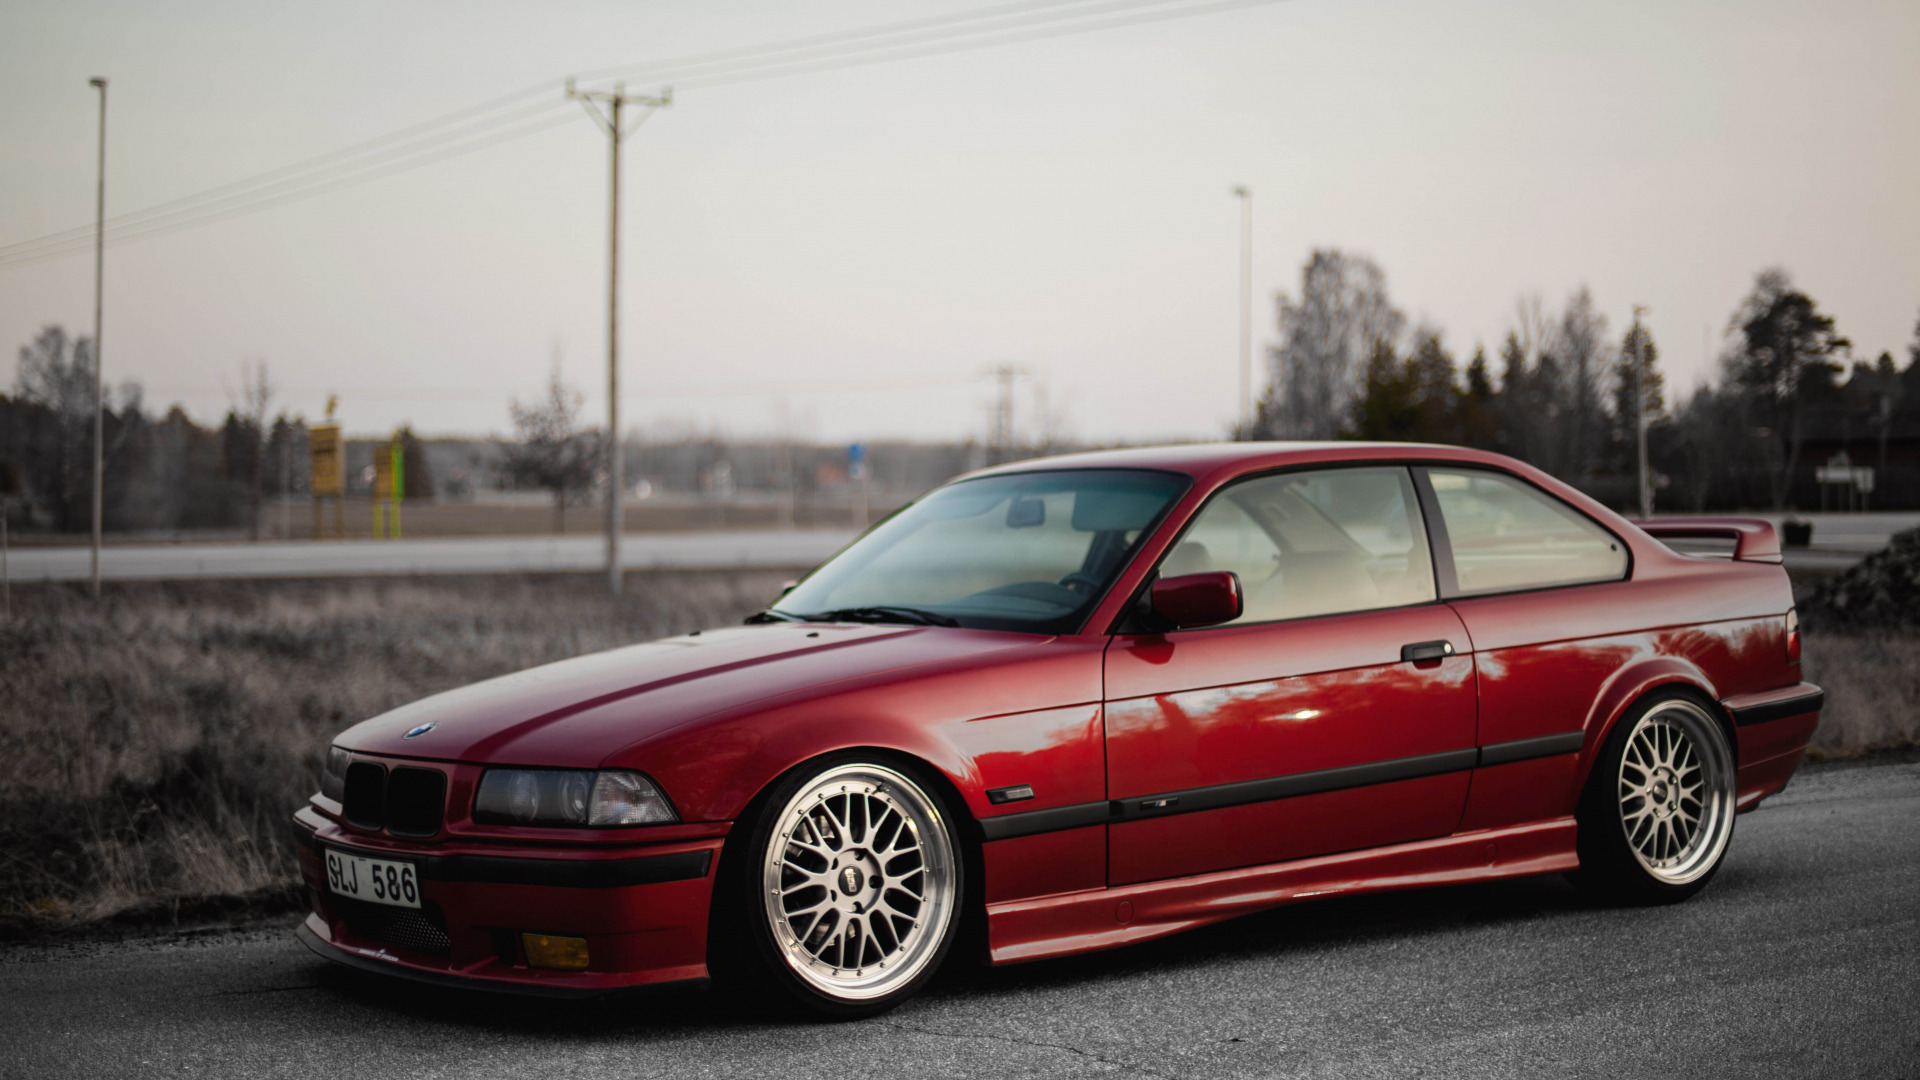 Download Wallpaper Road Red Bmw Bmw Red Oldschool 3 Series E36 Stance Section Bmw In Resolution 1920x1080